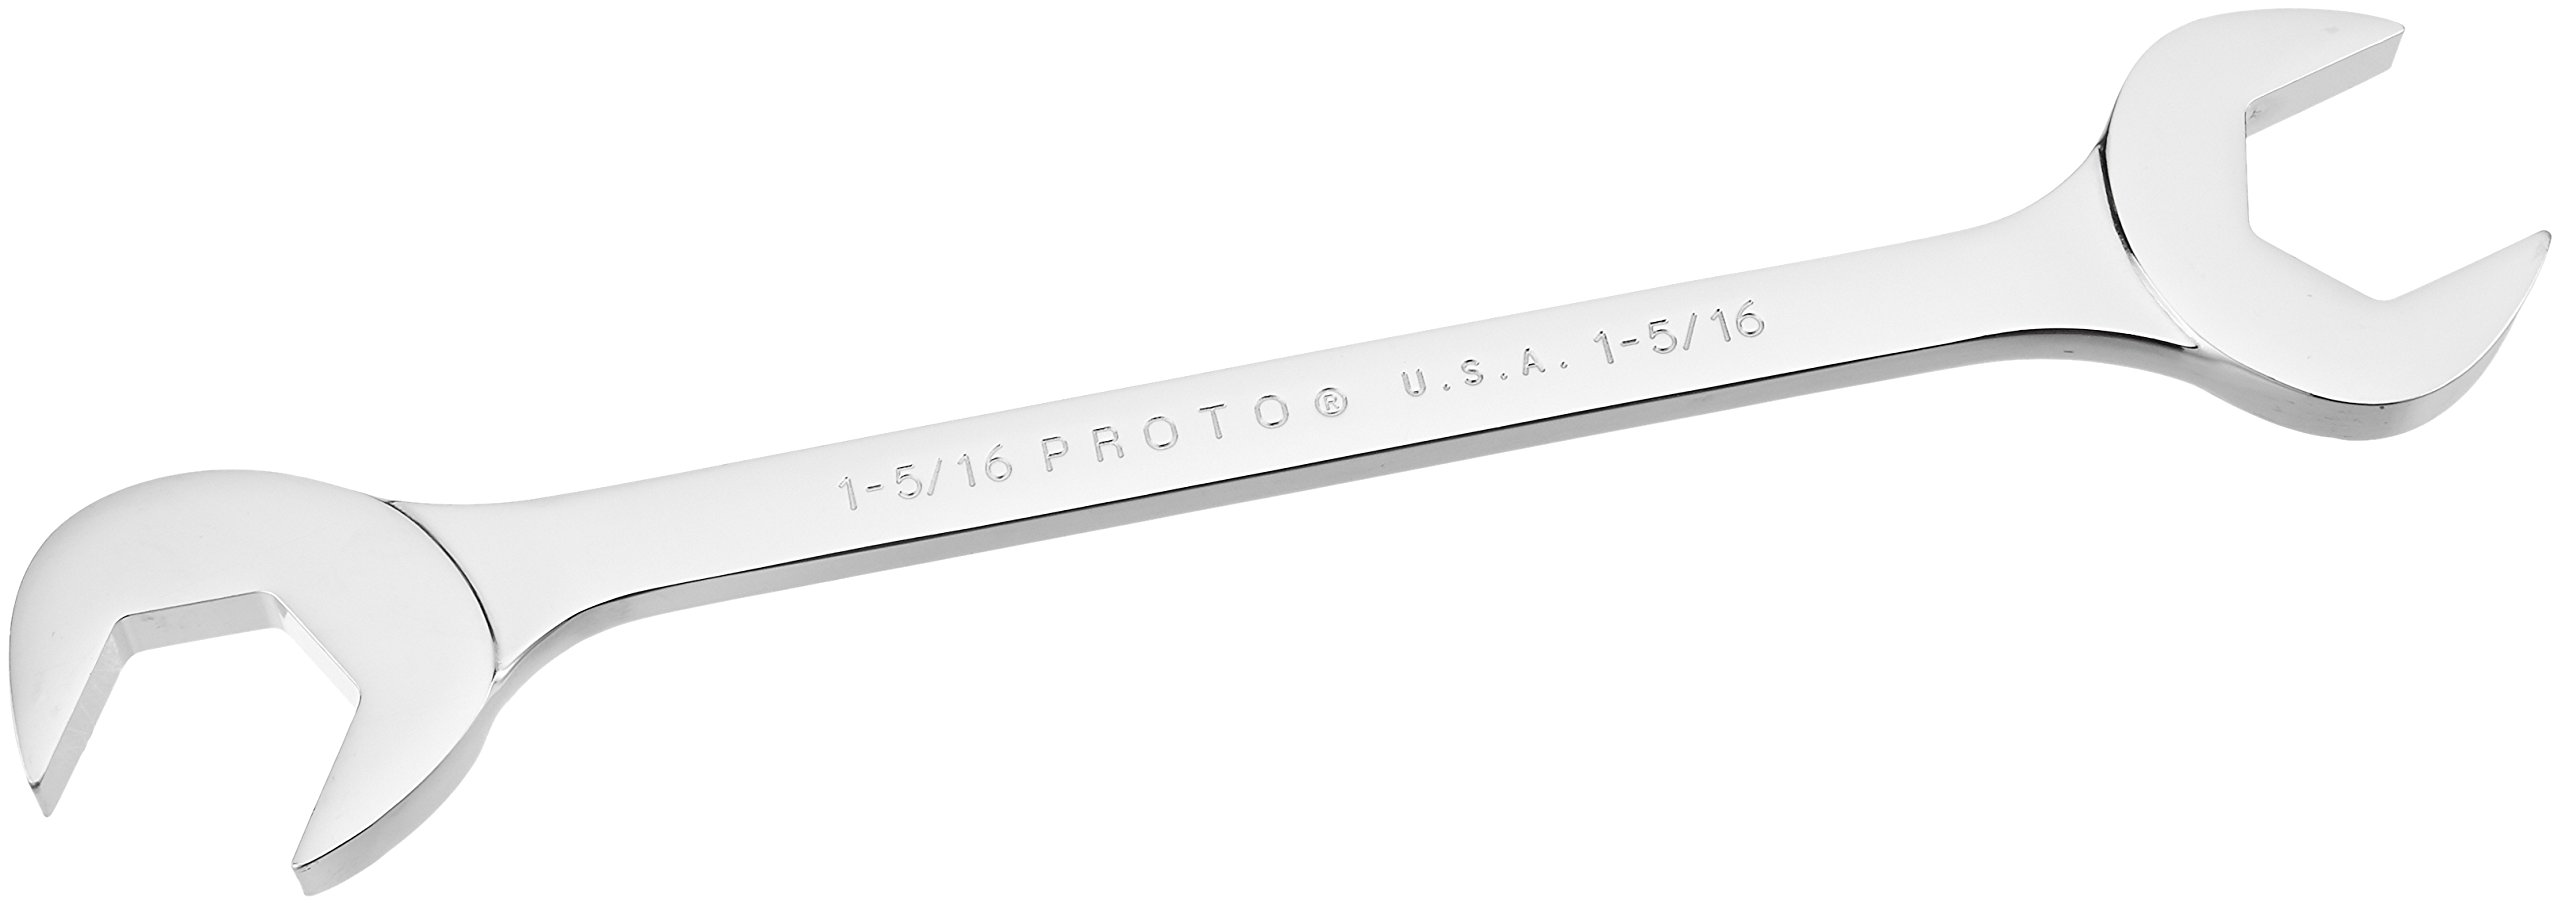 Proto - Full Polish Angle Open-End Wrench - 1-5/16'' (J3142)